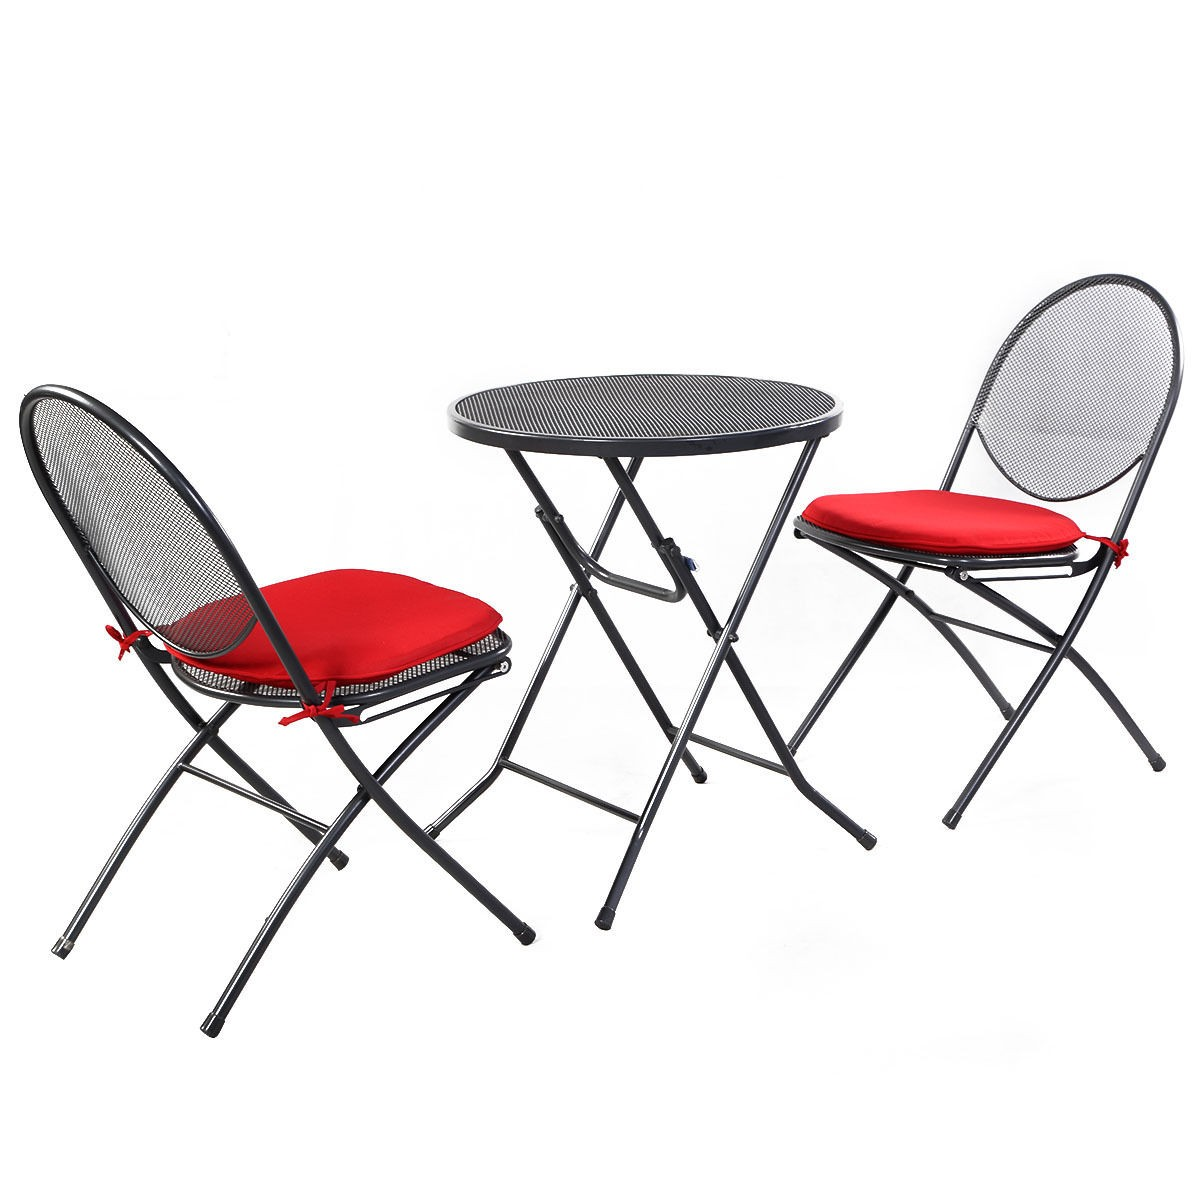 3 pcs folding steel mesh outdoor patio table chair garden for Mesh patio chairs